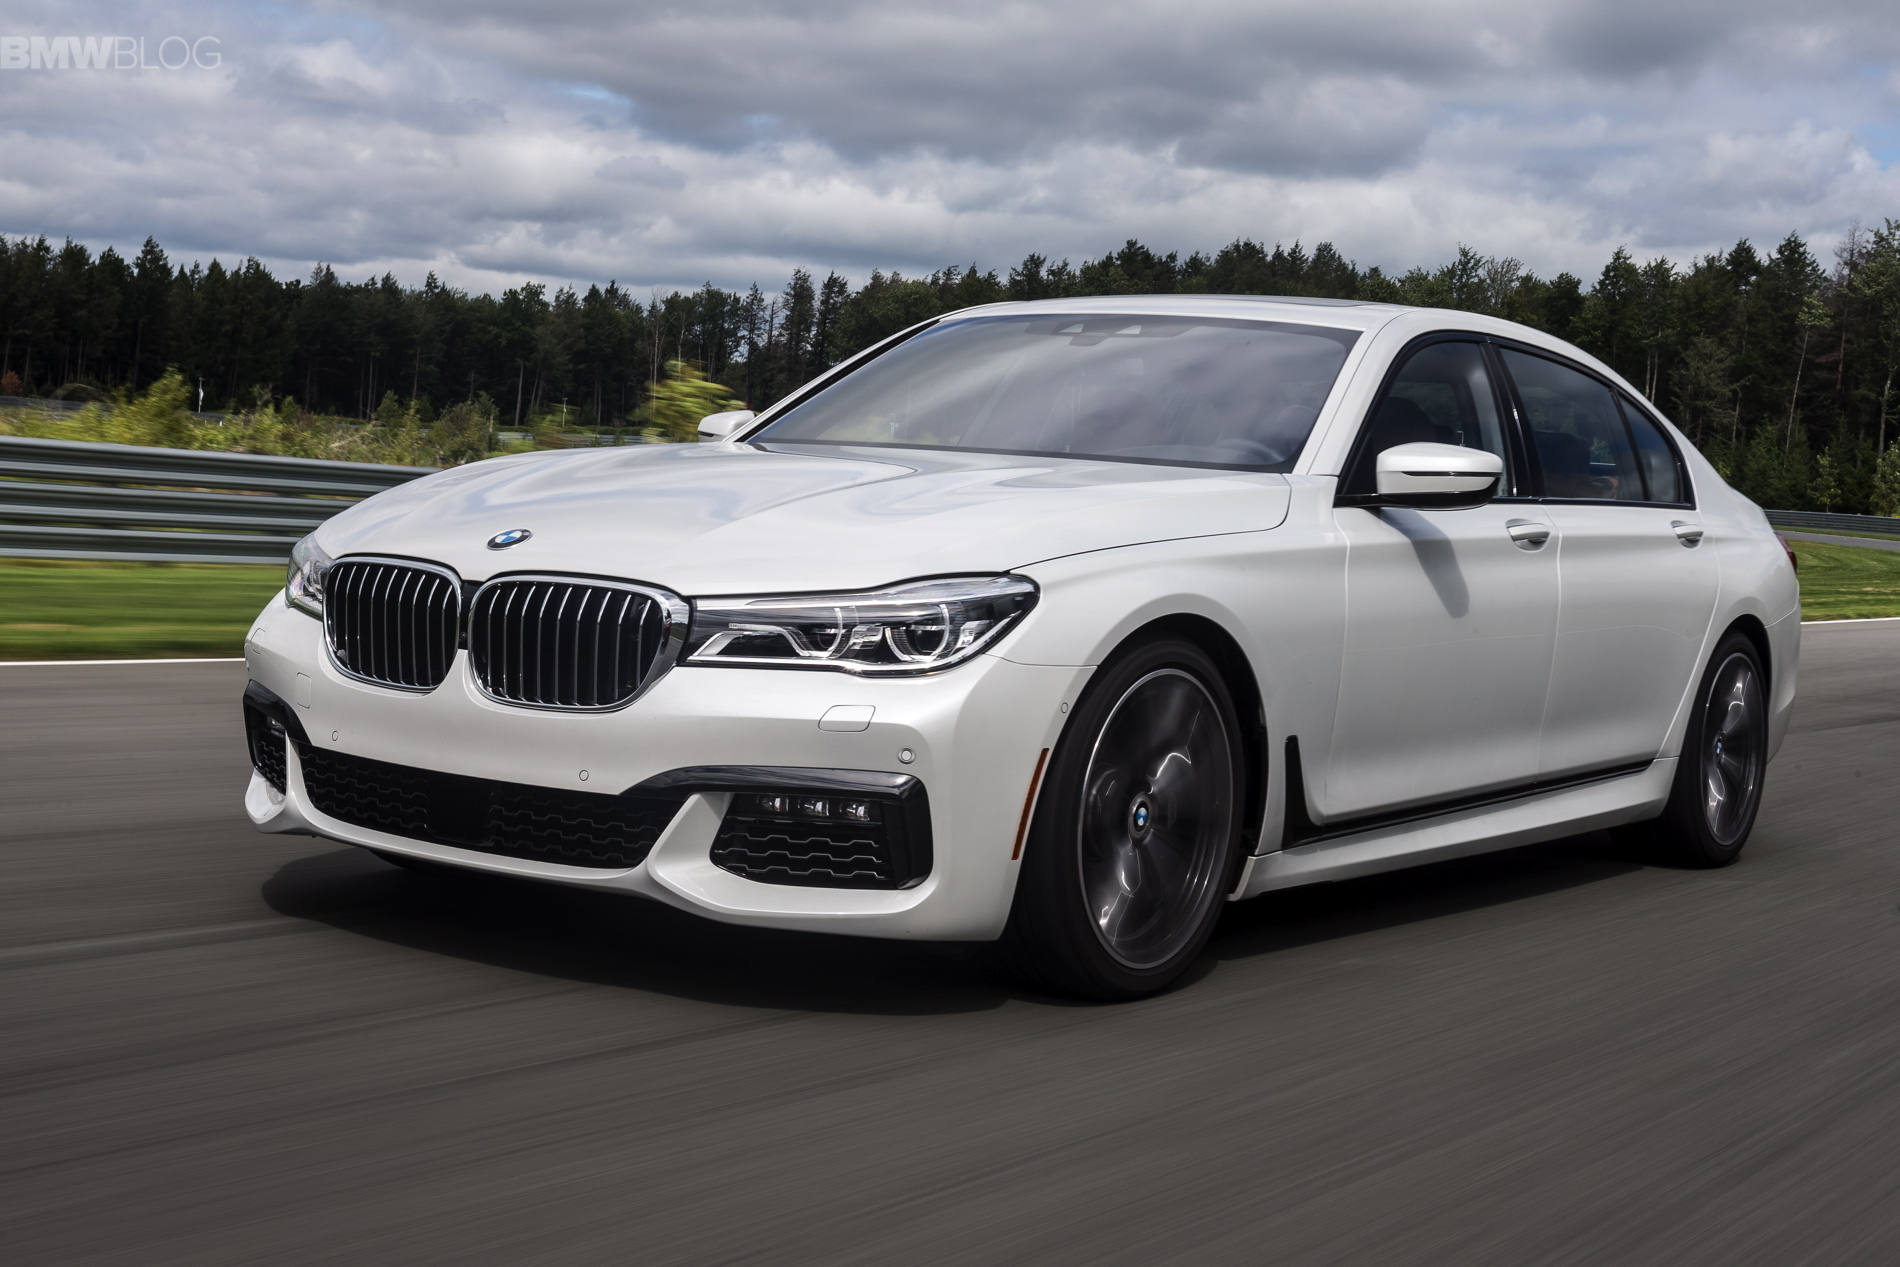 2016 bmw 7 series launch new york images 1900x 1200 89